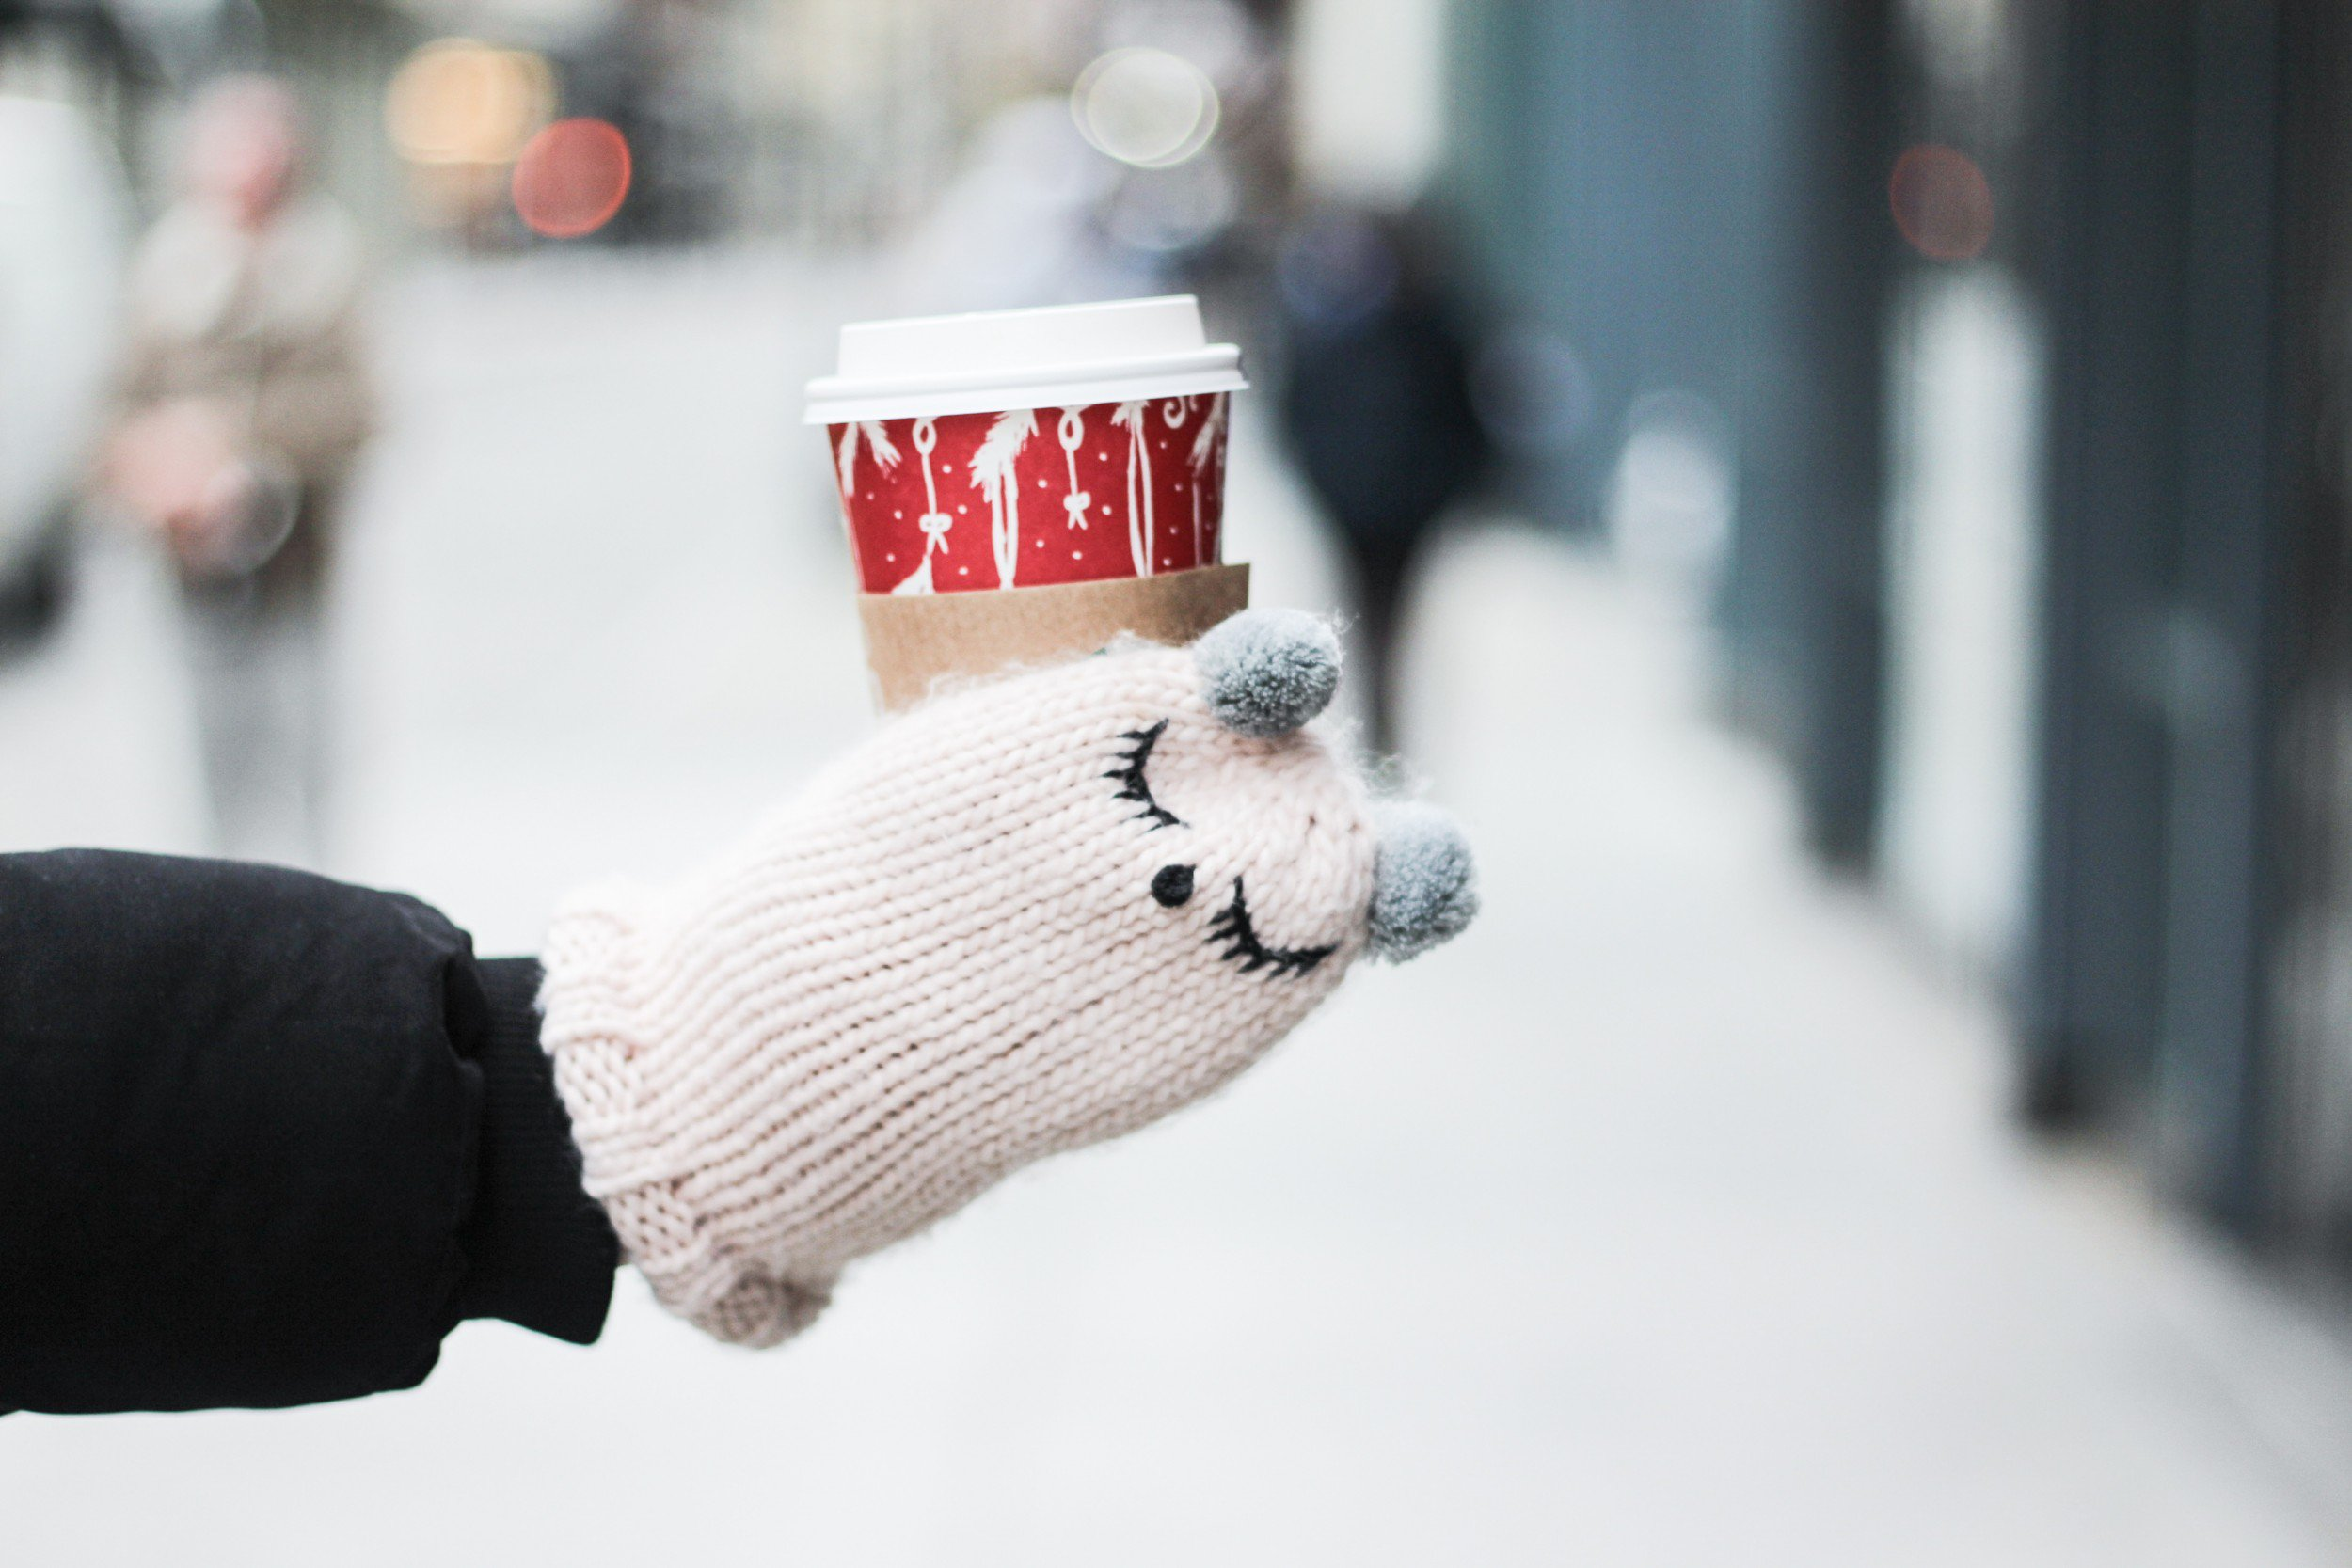 cute mittens starbucks mug acie blog (1 of 1)